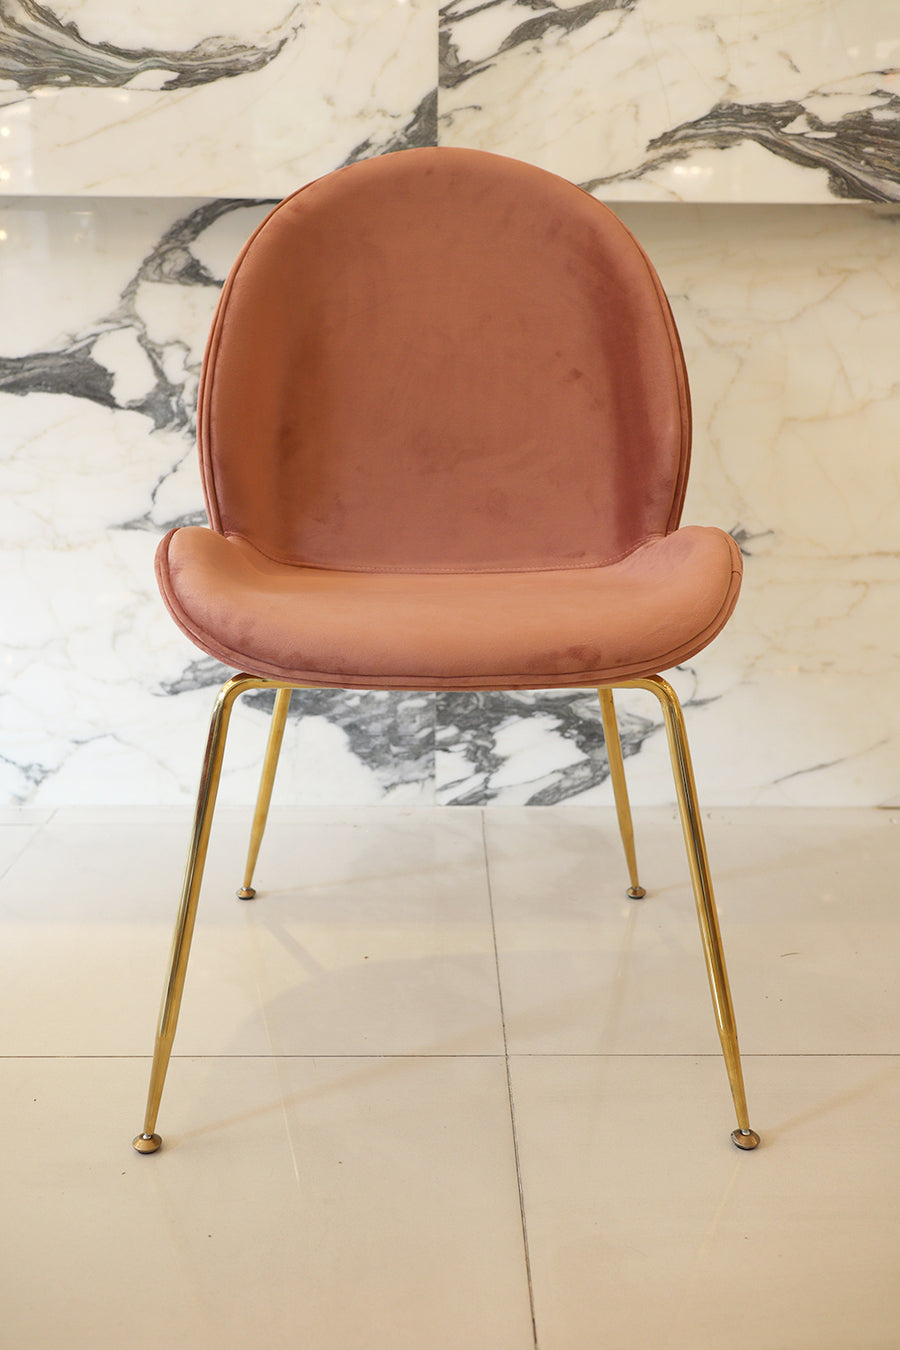 [TG] Replica Beetle Chair Pink Nude